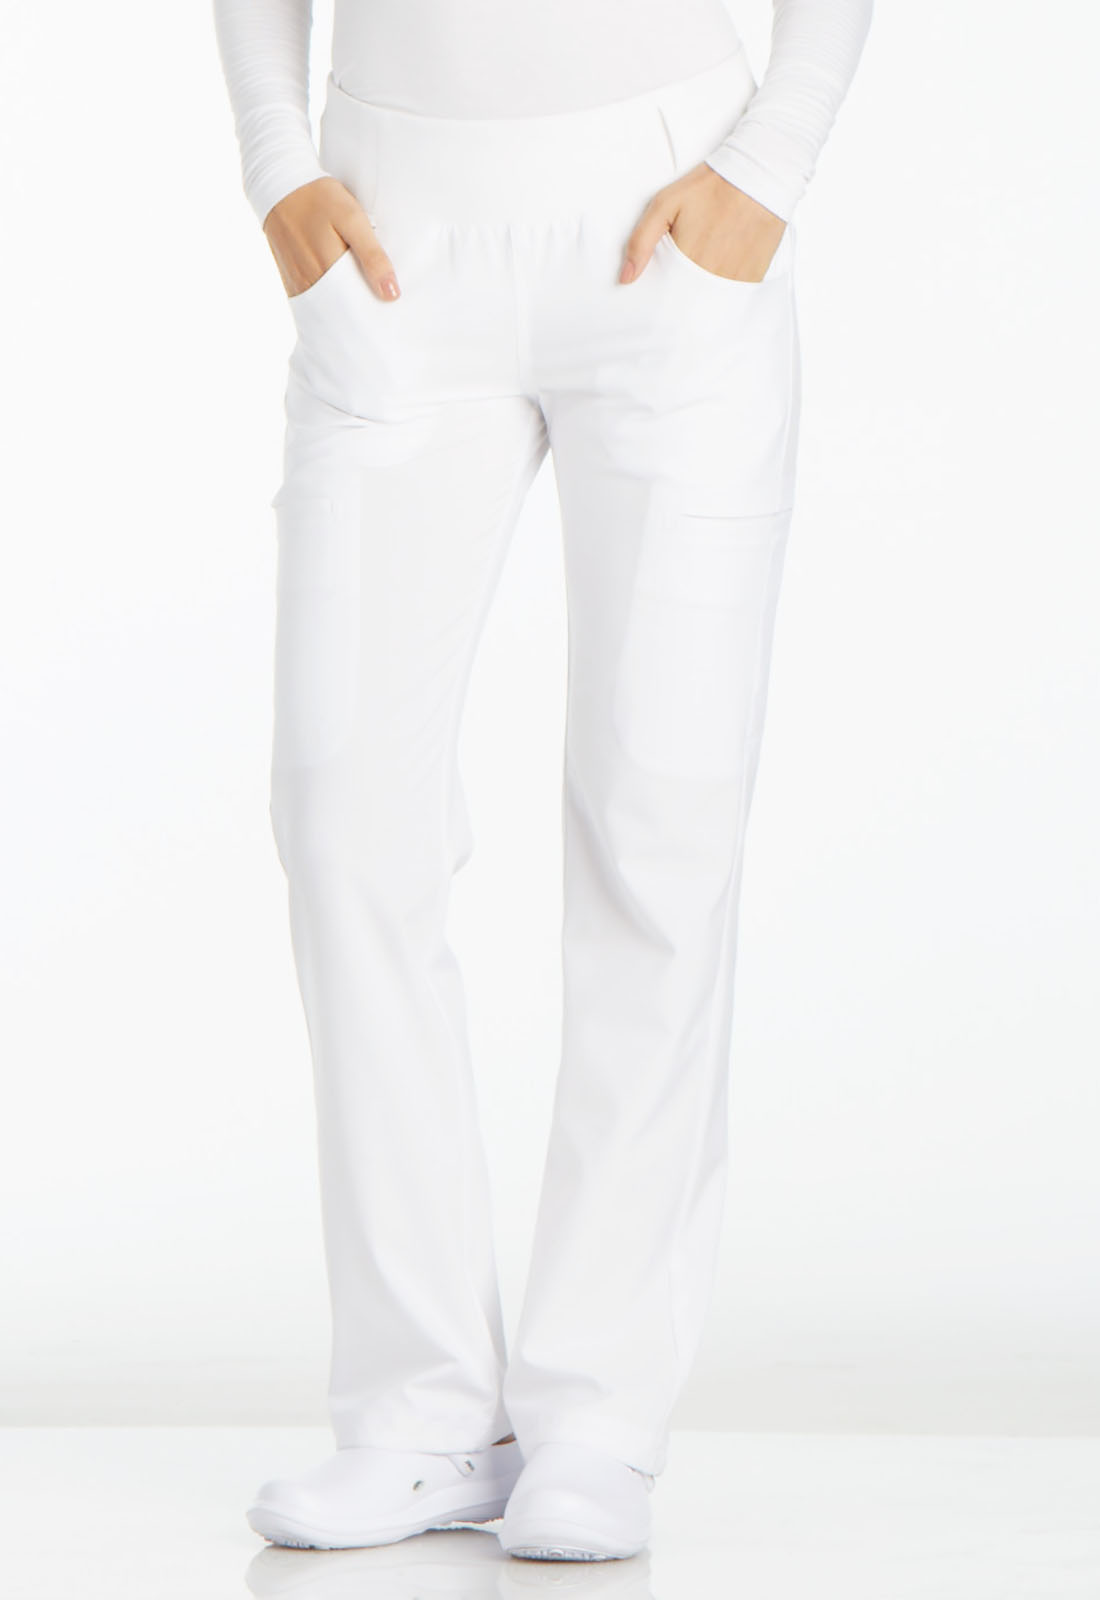 54cab2f365b iFlex Mid Rise Straight Leg Pull-on Pant in White CK002-WHT from ...